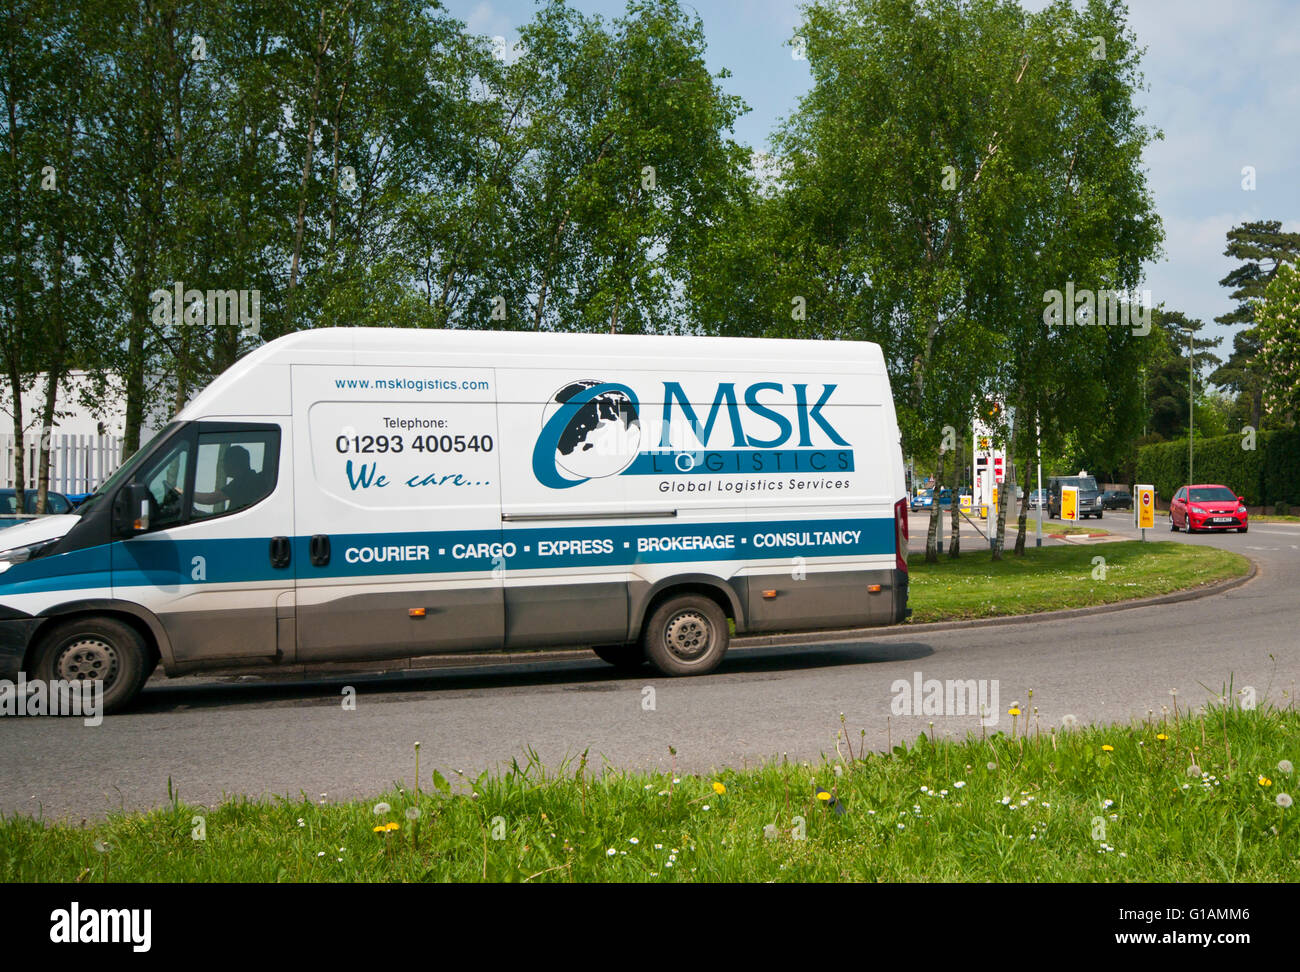 Side View Of a MSK Logistics Van - Stock Image